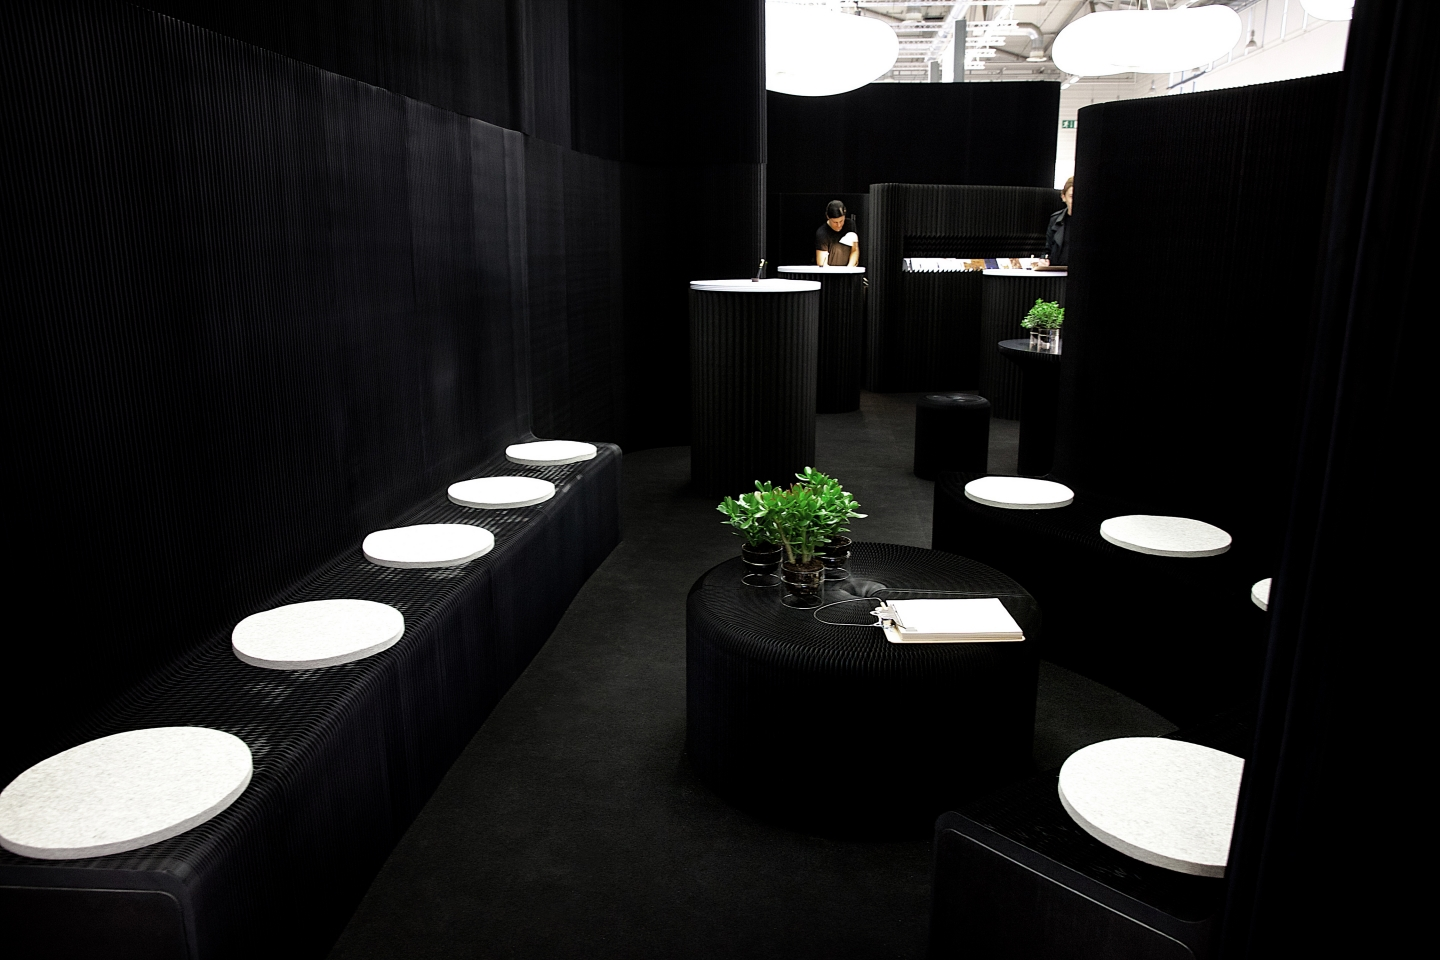 cloud lighting / custom accordion paper furniture in black by molo - molo's installation at Orgatec 2014 featured benchwall, thinwall, wool felt pad and prototypes of cantilever table